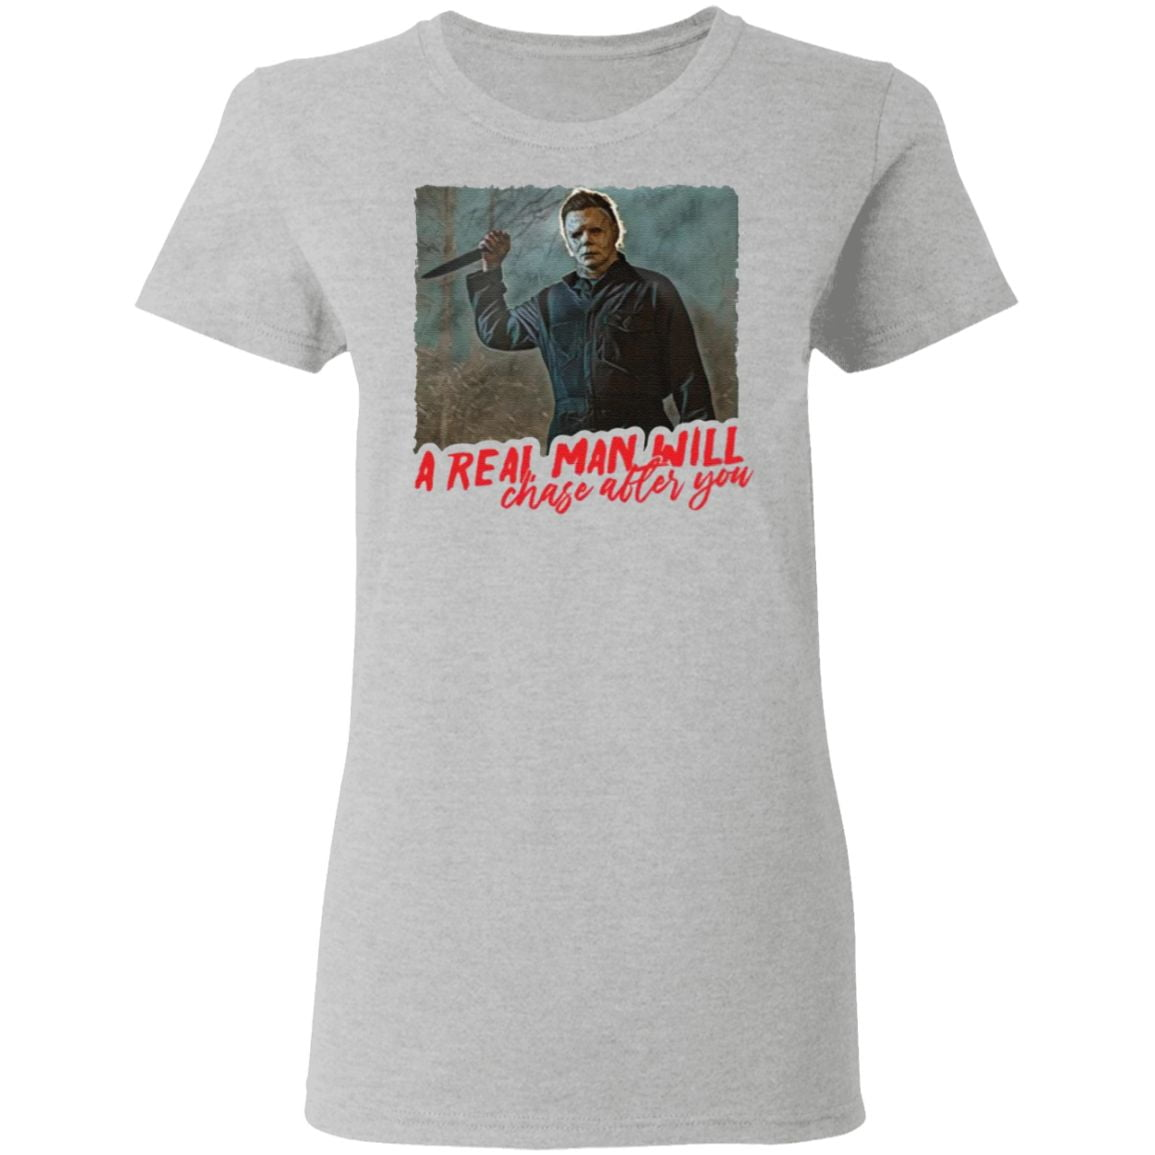 Michael Myers A Real Man Will Chase After You tshirt